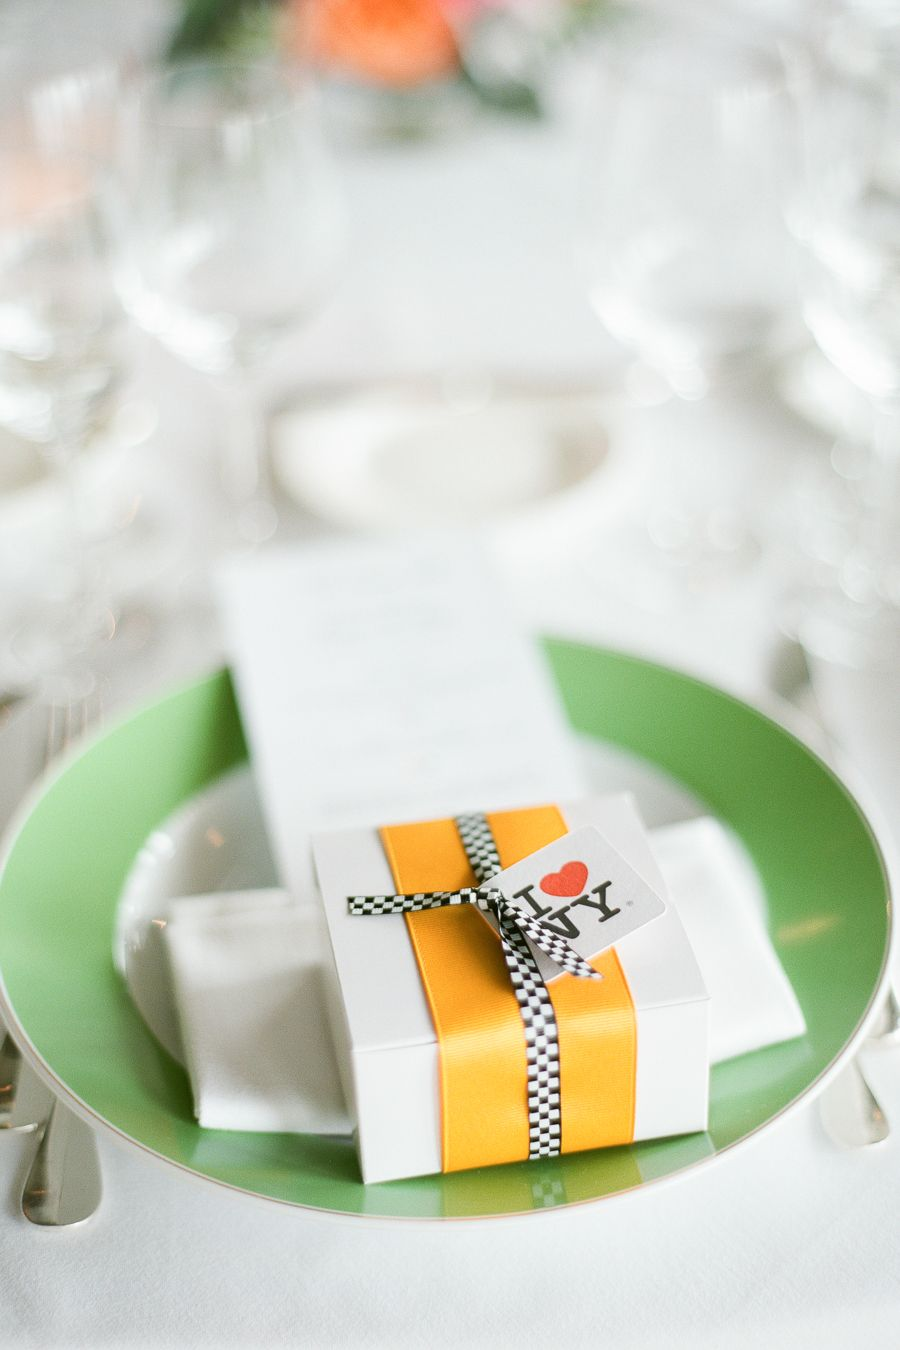 New York Theme Wedding Favors | Favors, Weddings and Wedding